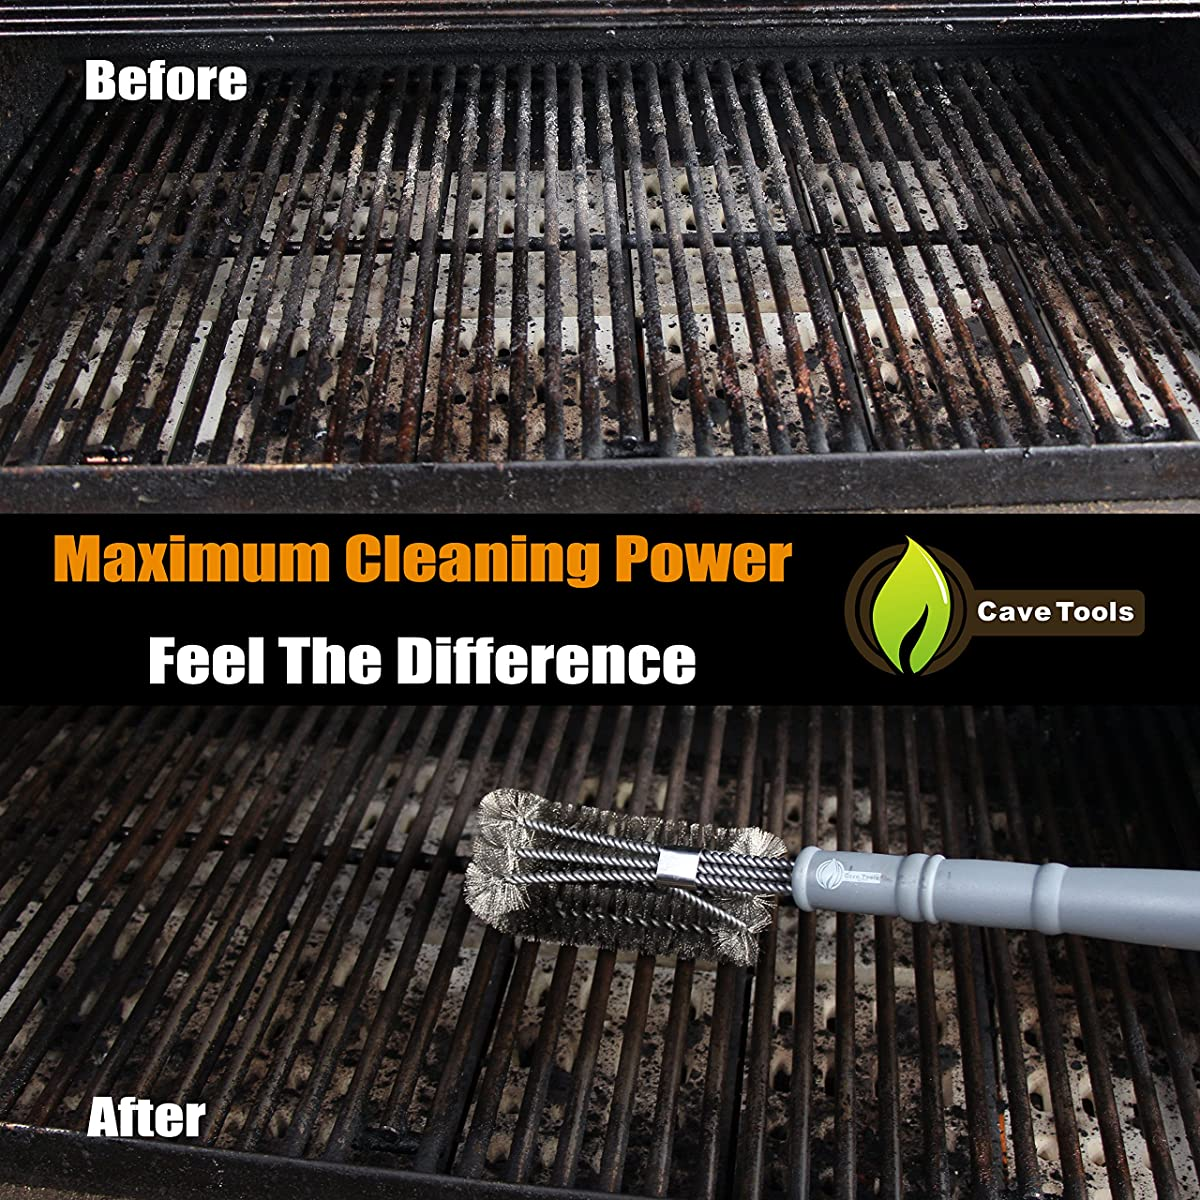 "BBQ Grill Brush - New & Improved 100% RUST PROOF DESIGN - Stainless Steel Wire Bristle with Strength Clip for Cleaning Char Broil Weber Porcelain and Infrared Barbecue Grates - 18"" Handle - Cave Tools"